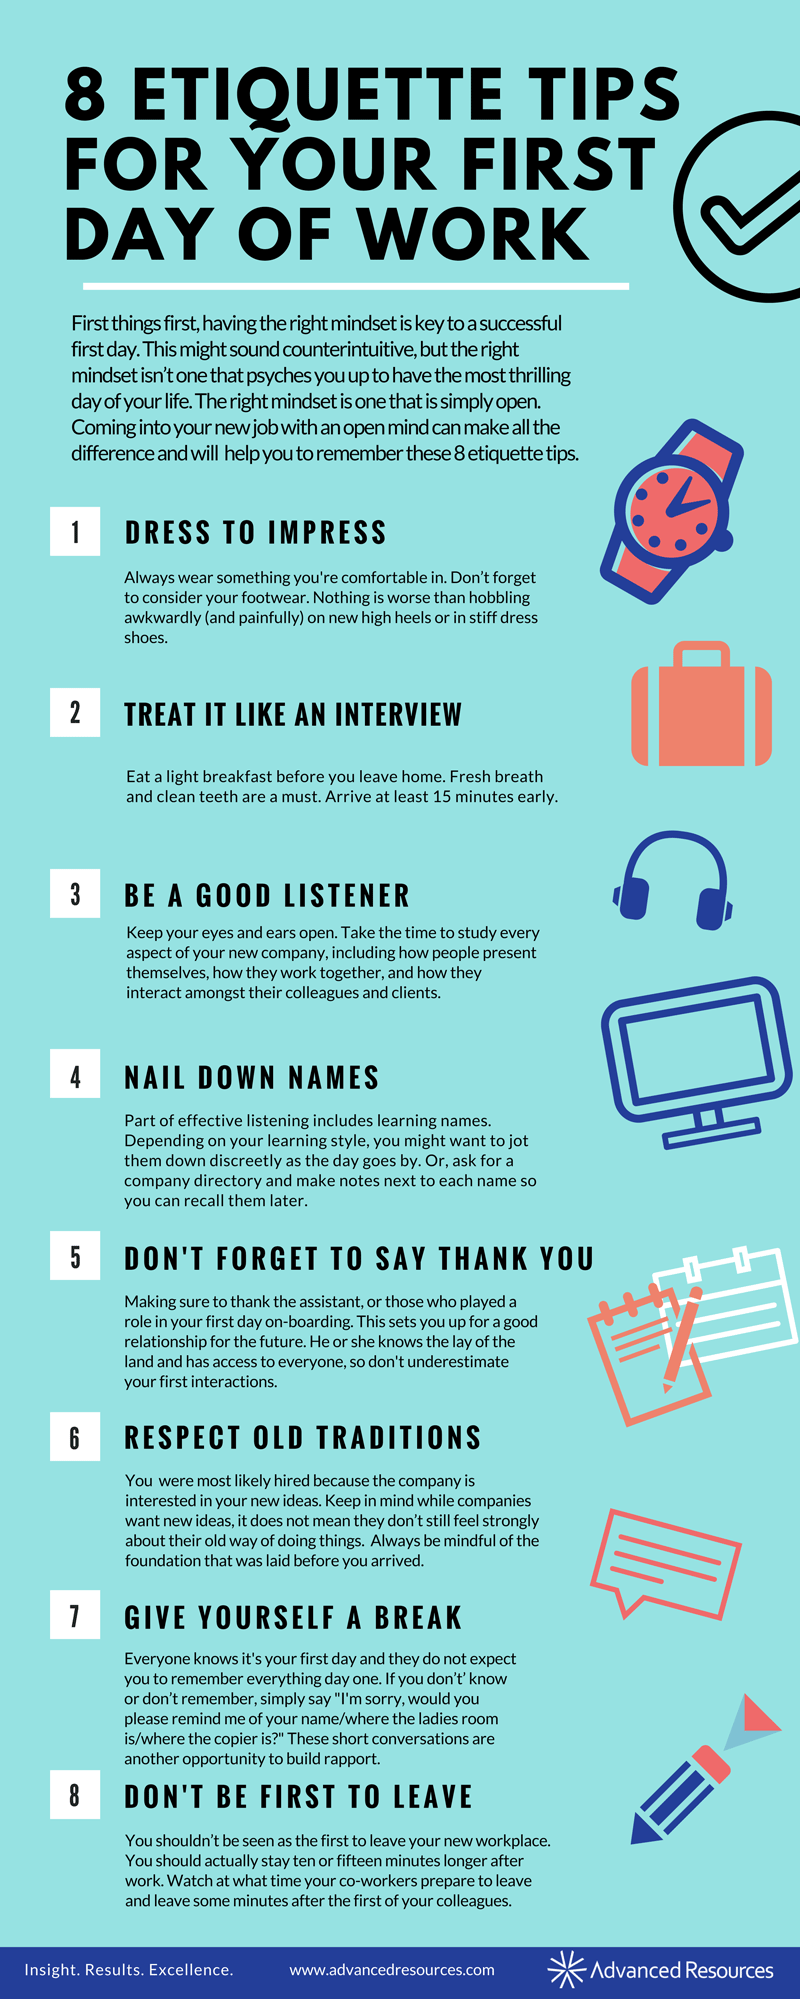 8-tips-for-your-first-day-of-work.png